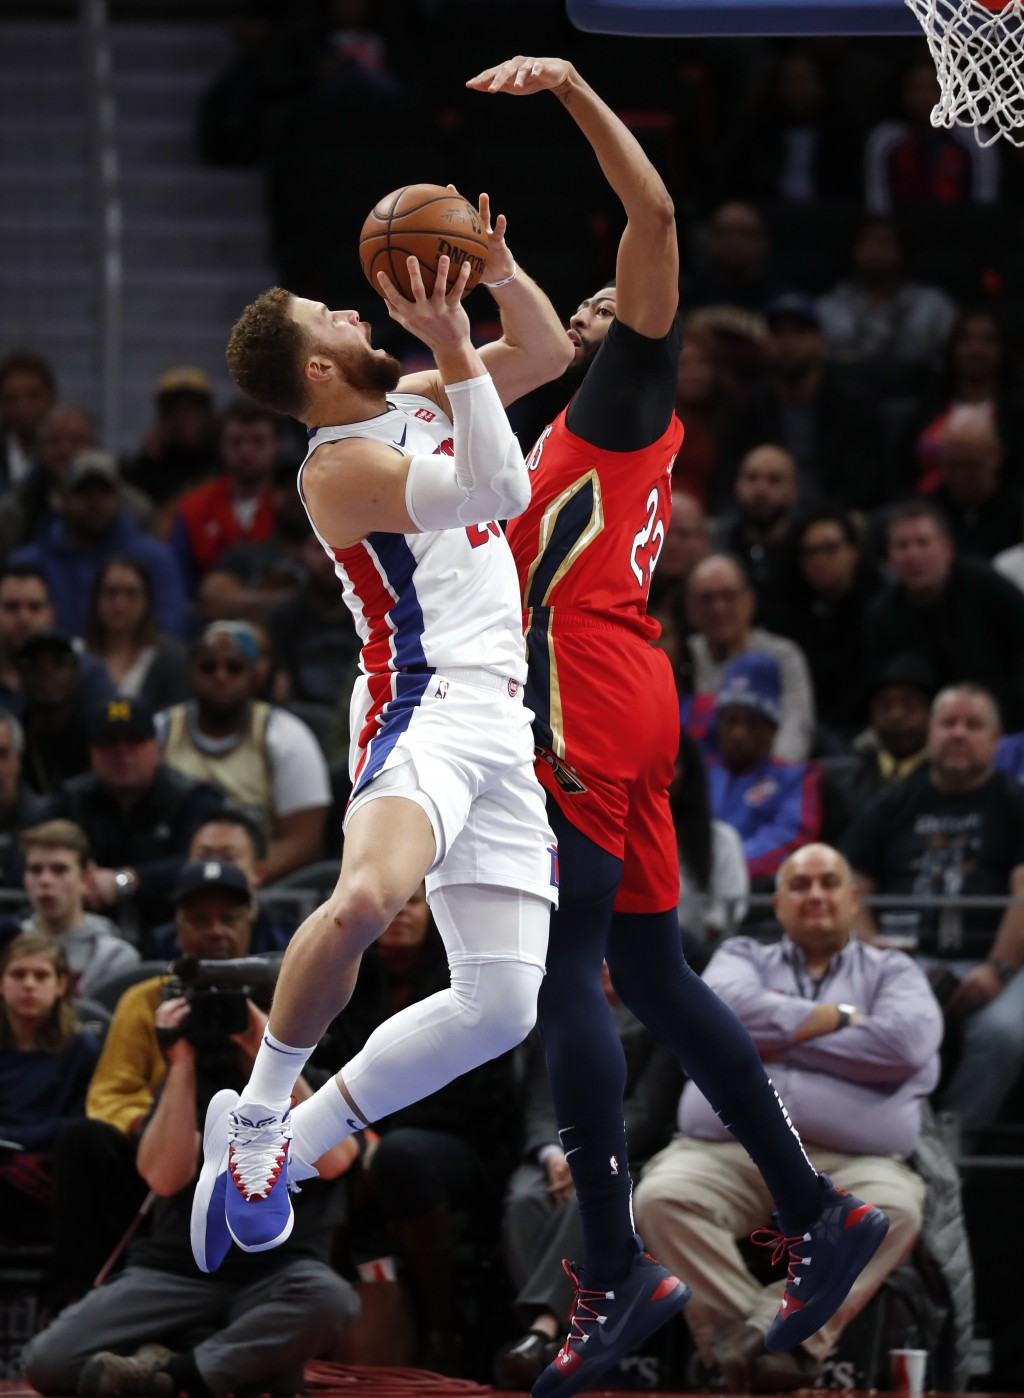 Detroit Pistons forward Blake Griffin (23) drives on New Orleans Pelicans forward Anthony Davis (23) in the second half of an NBA basketball game in D